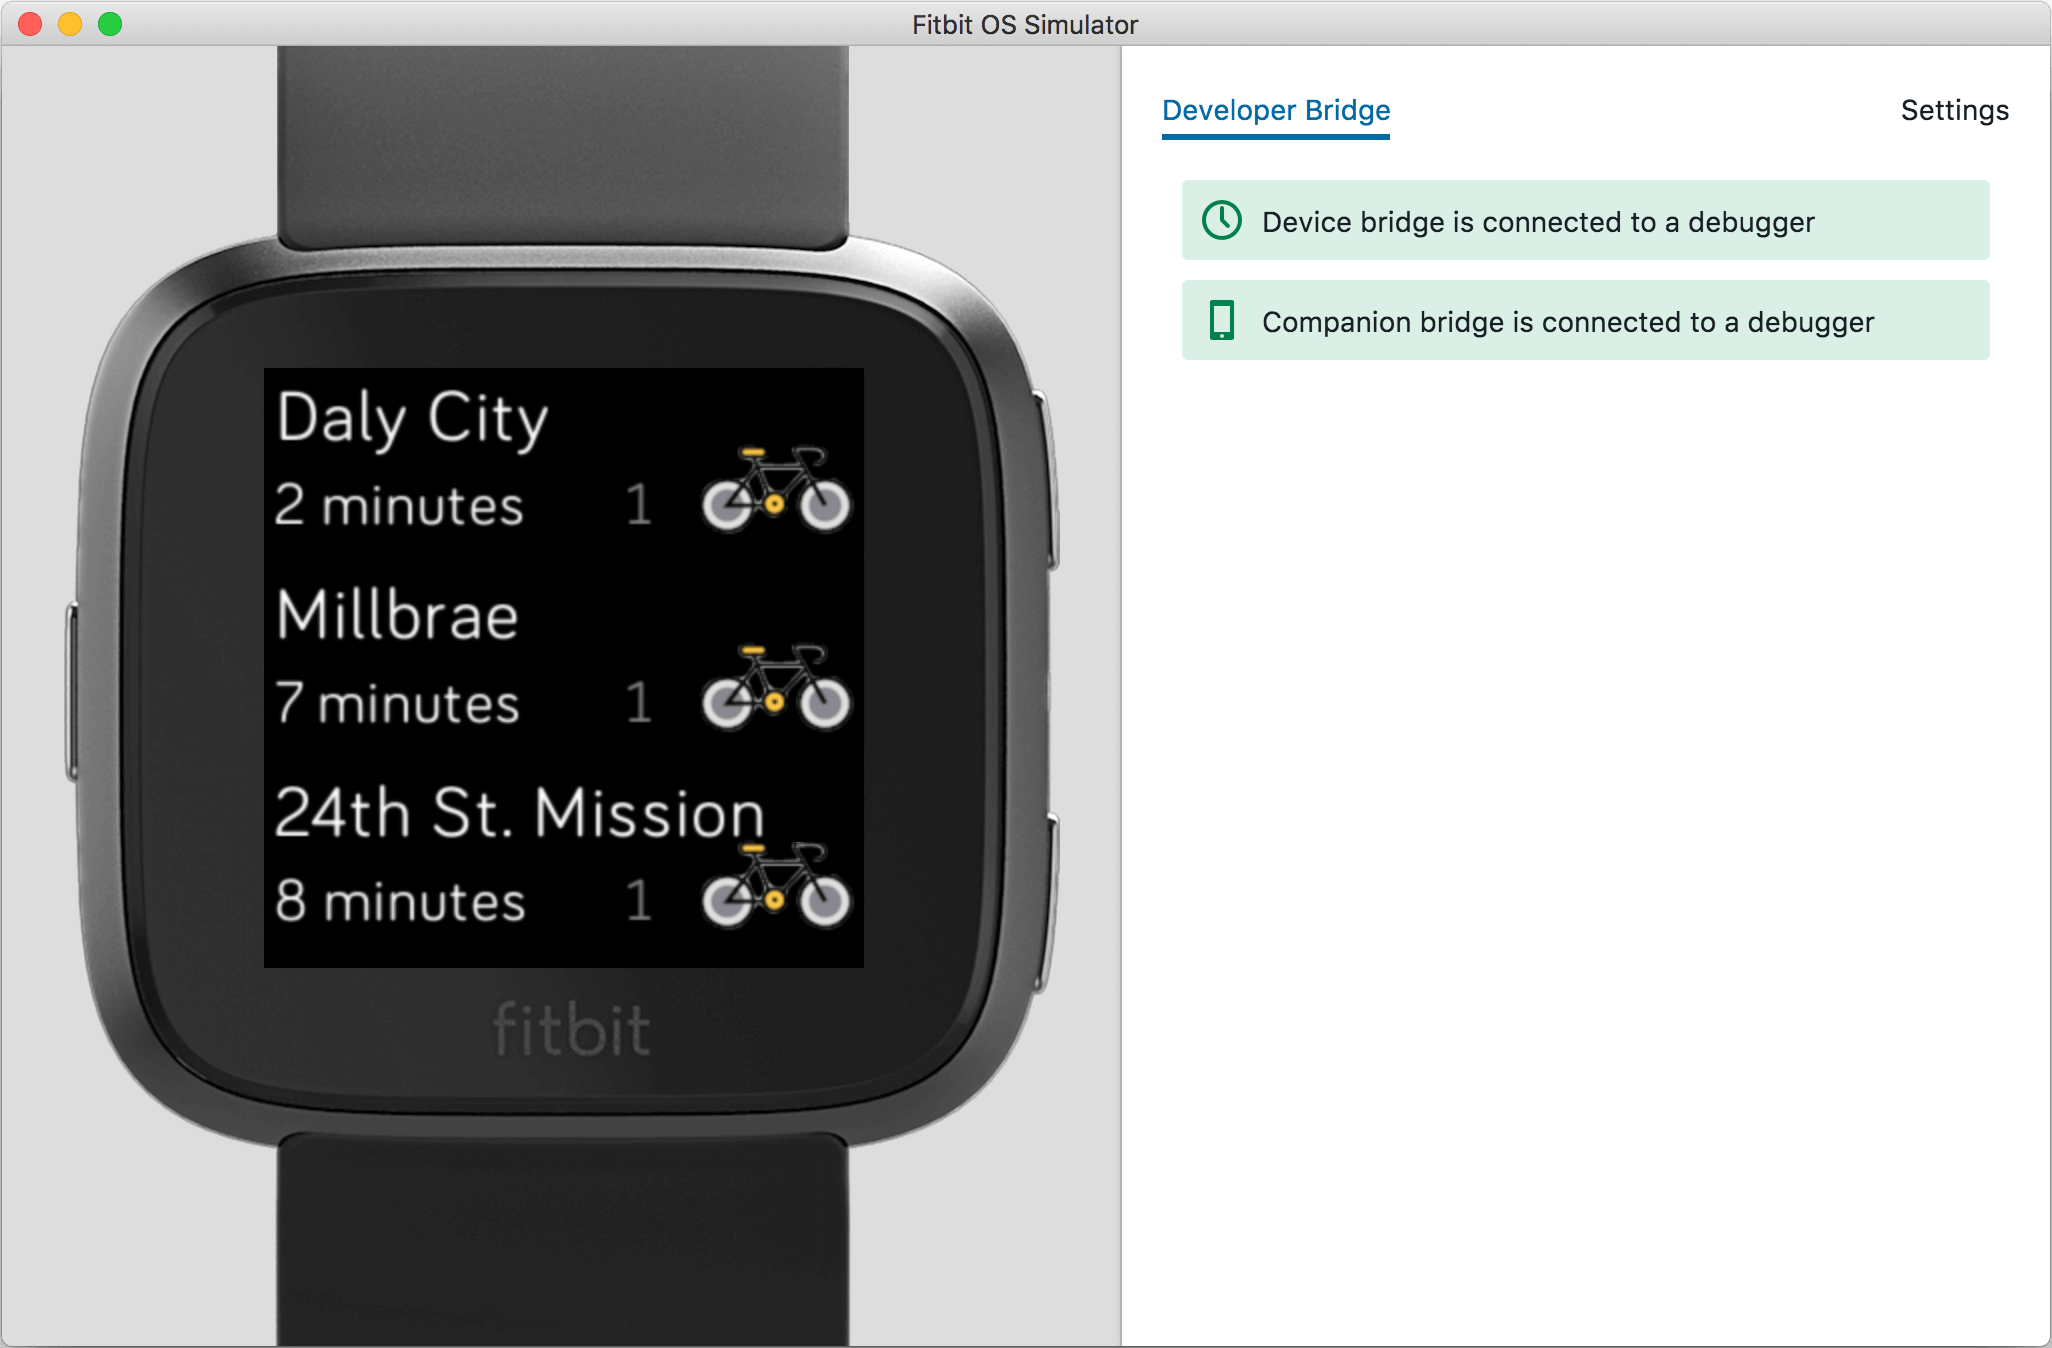 Announcing Fitbit OS 2 0 and Our Brand New Simulator!